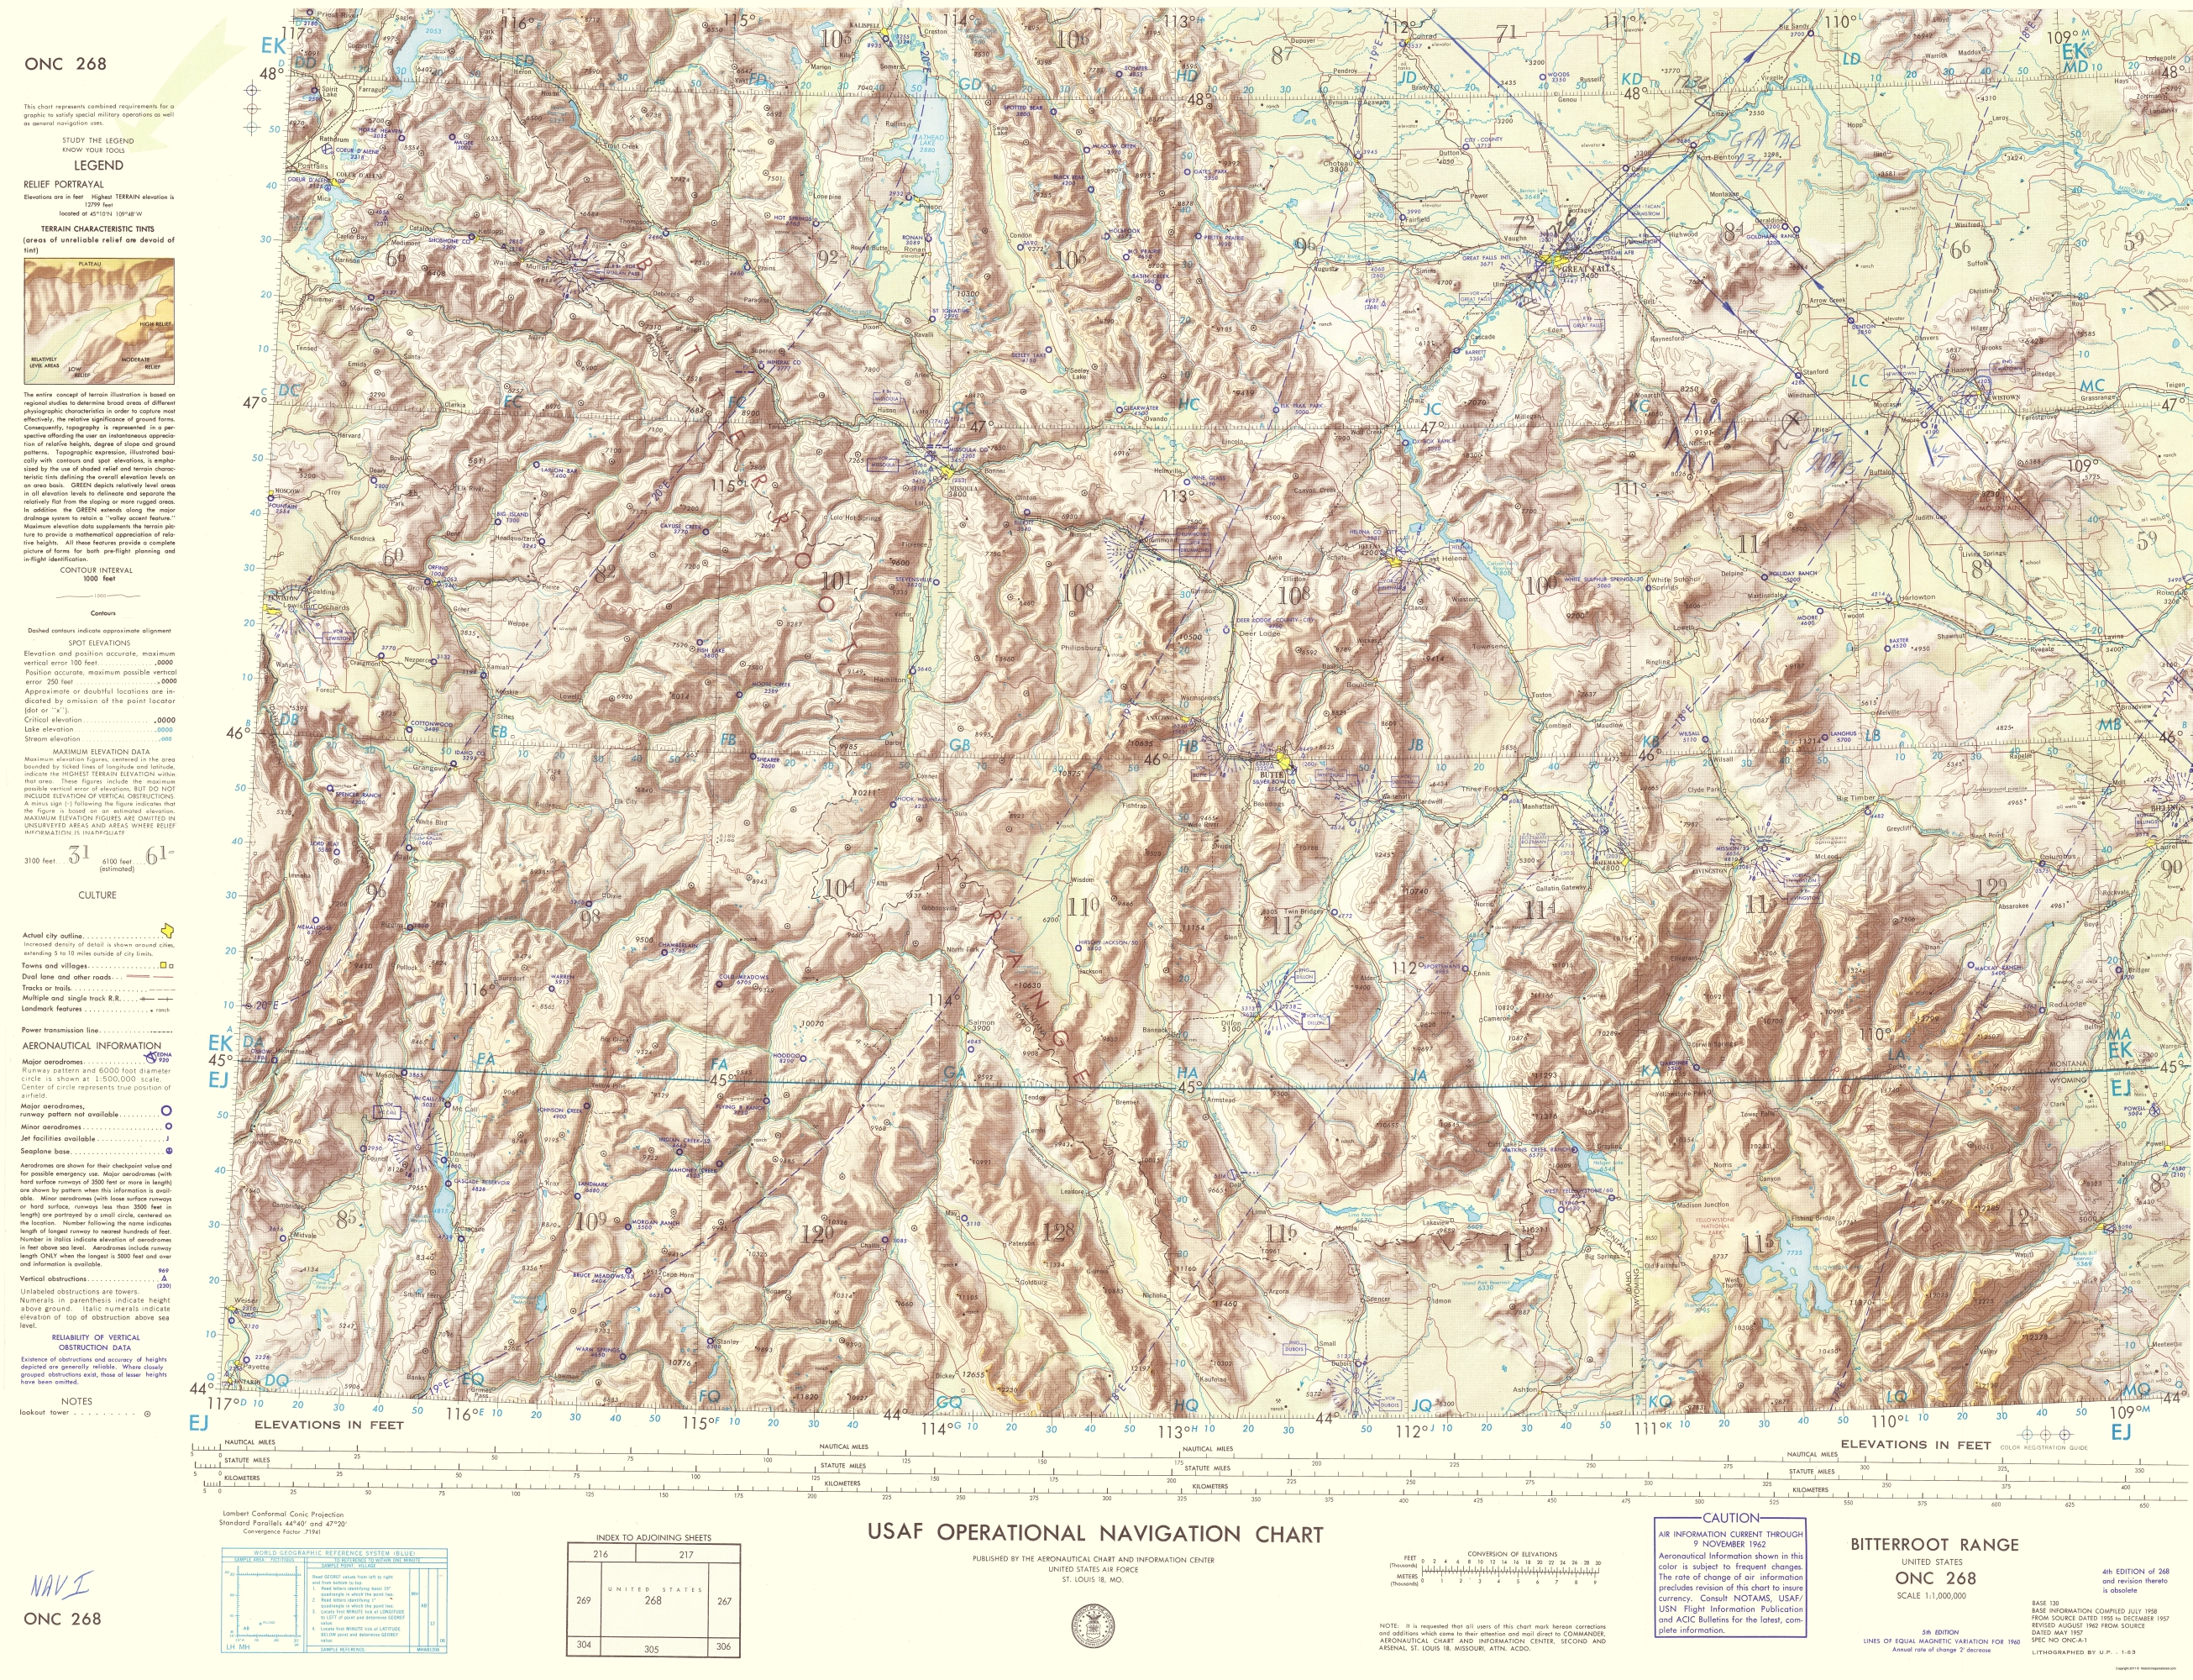 Topographical Map Bitterroot Range Montana Wyoming 1962